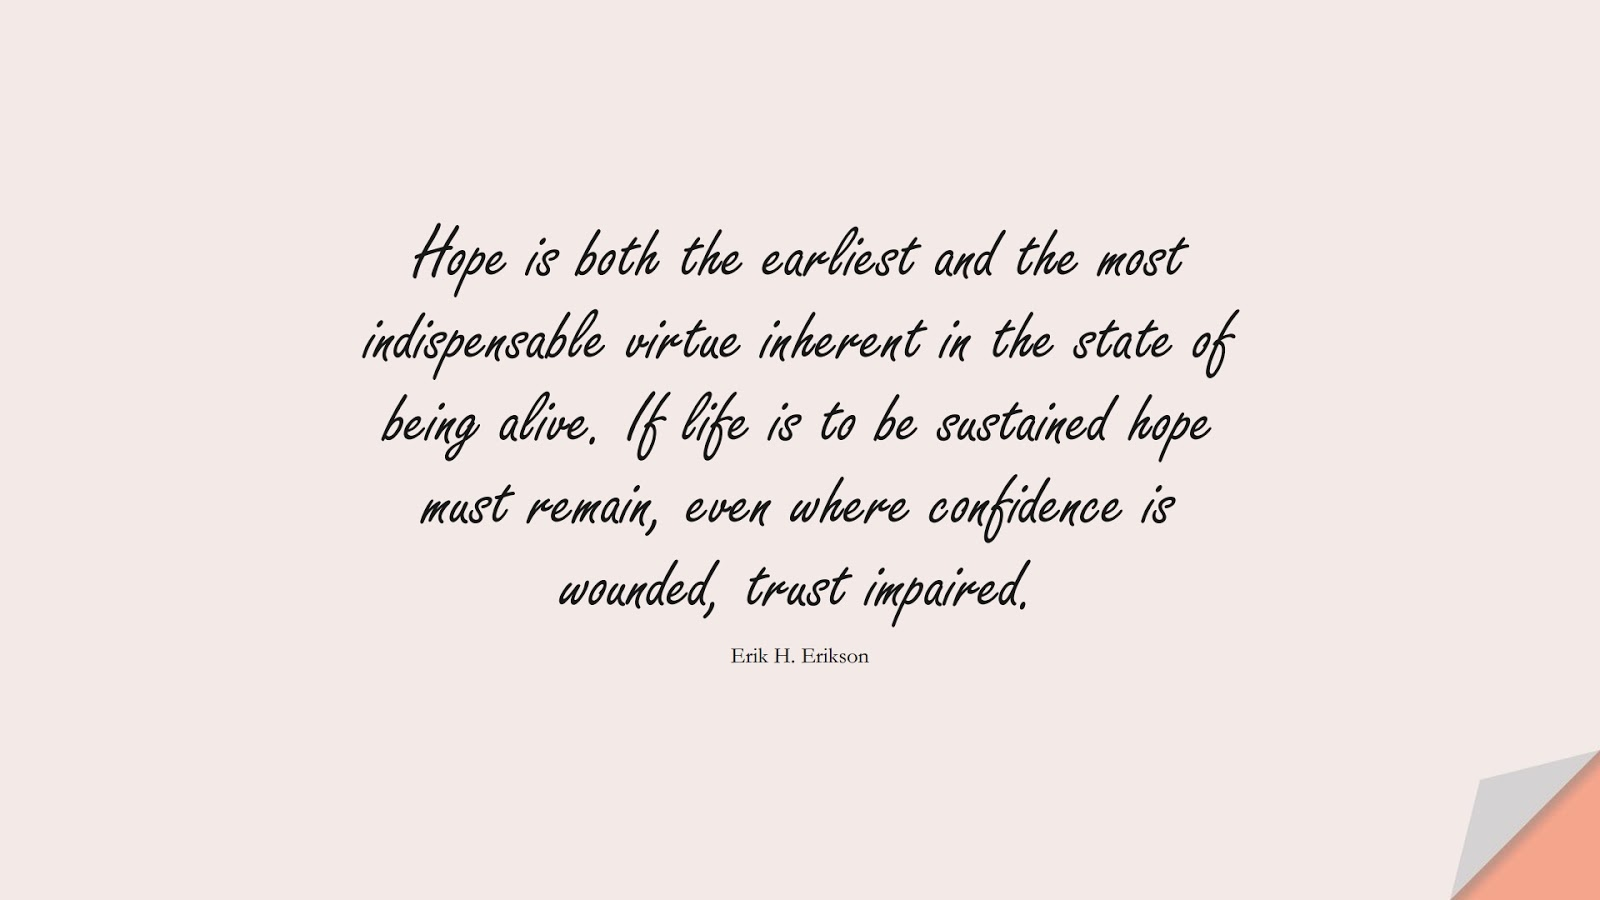 Hope is both the earliest and the most indispensable virtue inherent in the state of being alive. If life is to be sustained hope must remain, even where confidence is wounded, trust impaired. (Erik H. Erikson);  #HopeQuotes